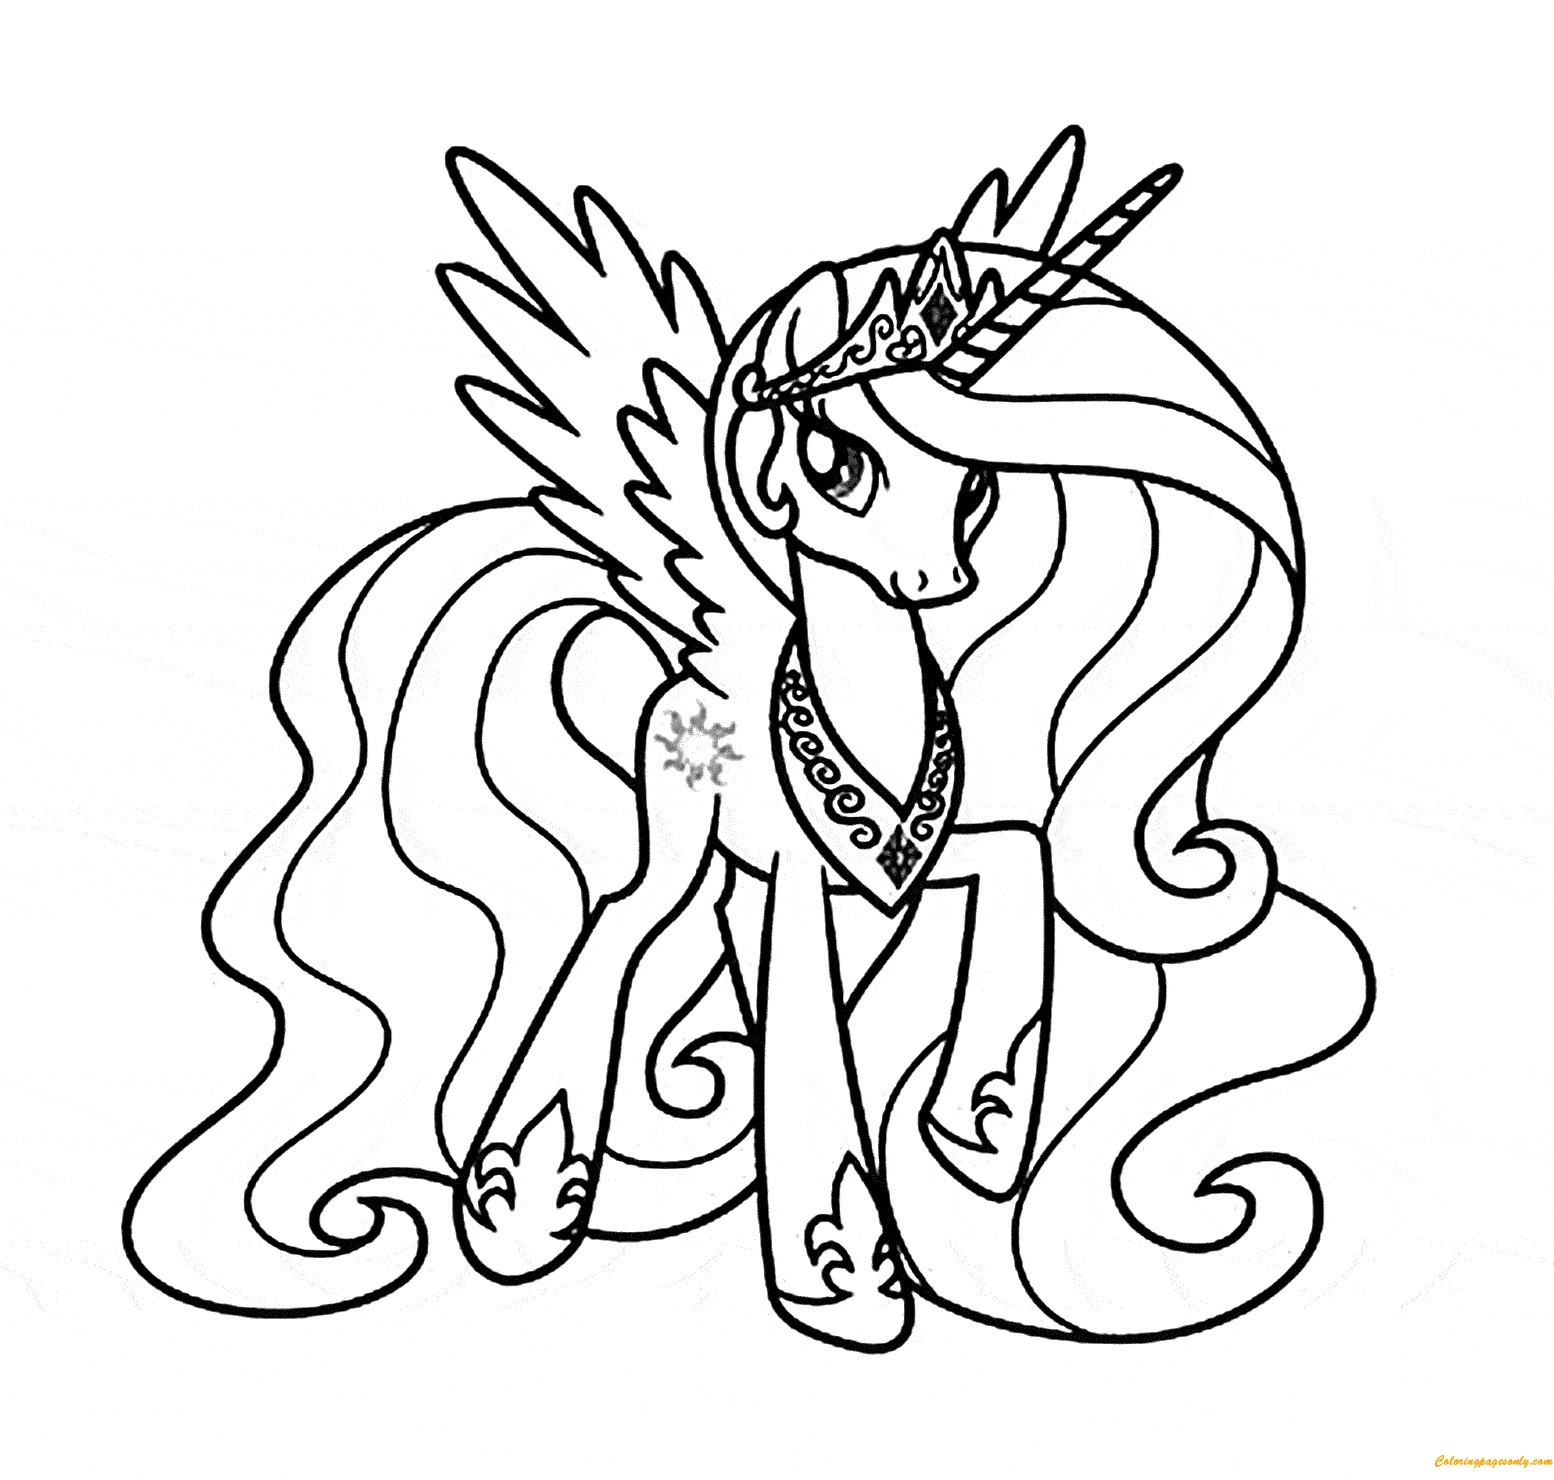 1554x1480 My Little Pony Coloring Pages Princess Luna And Celestia Best